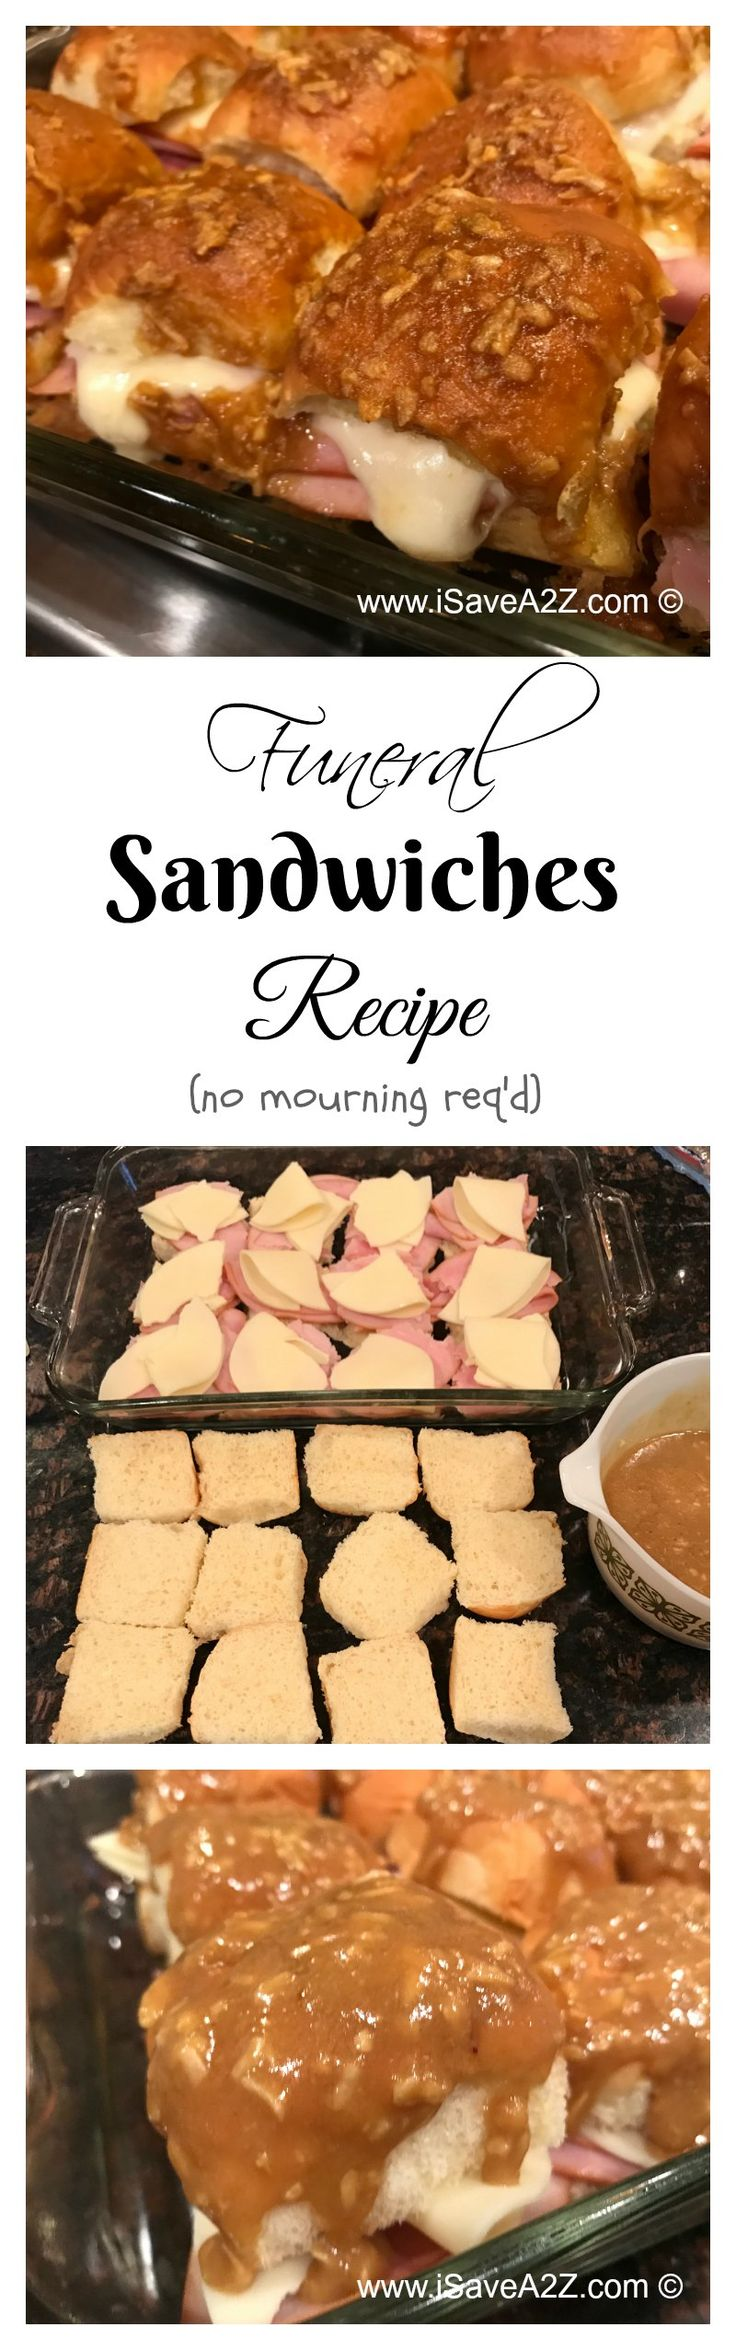 Funeral Sandwiches Recipe:  Fun Recipe with No Mourning Required